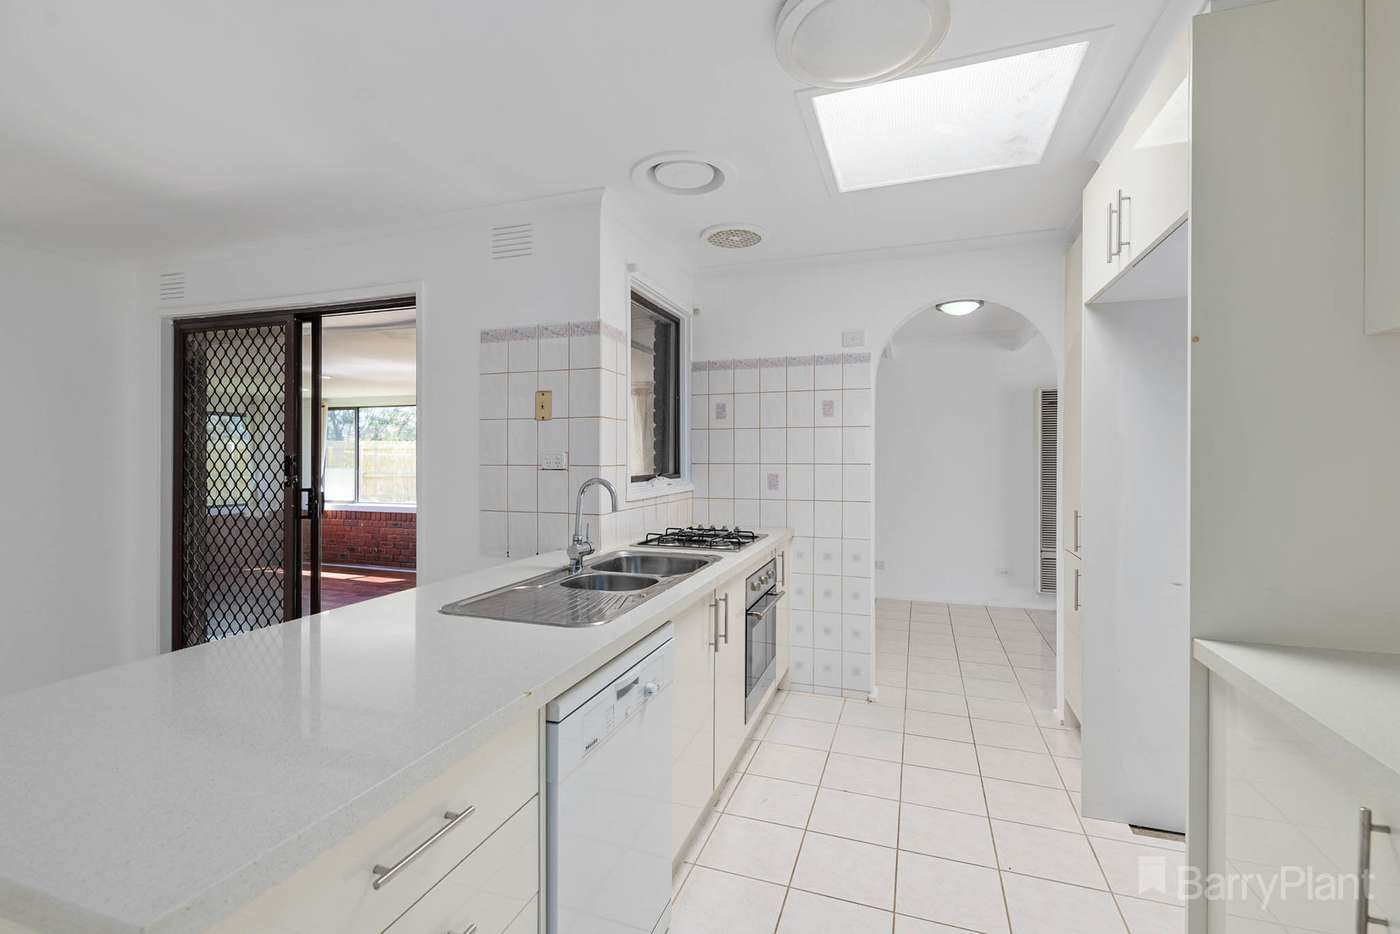 Fifth view of Homely house listing, 2 Wilga Court, Narre Warren VIC 3805